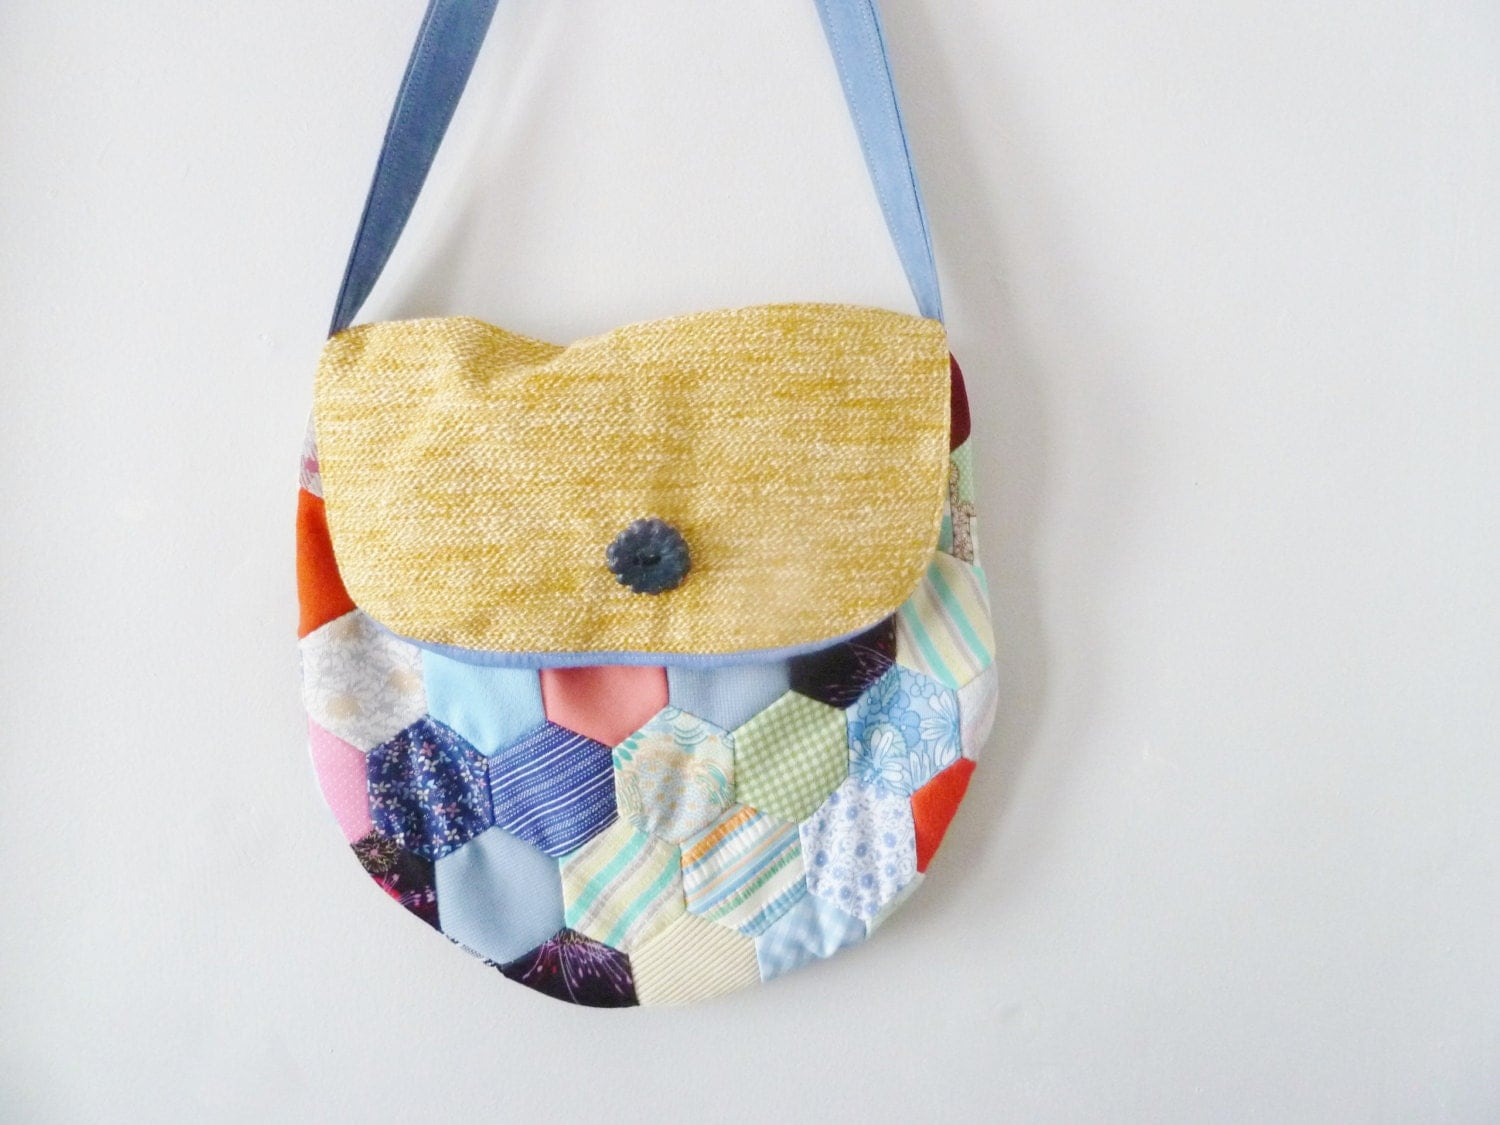 the hex quilt, marigold flap front, button bag ... vintage fabric, eco-friendly, crossbody bag. - sweetanddirtys